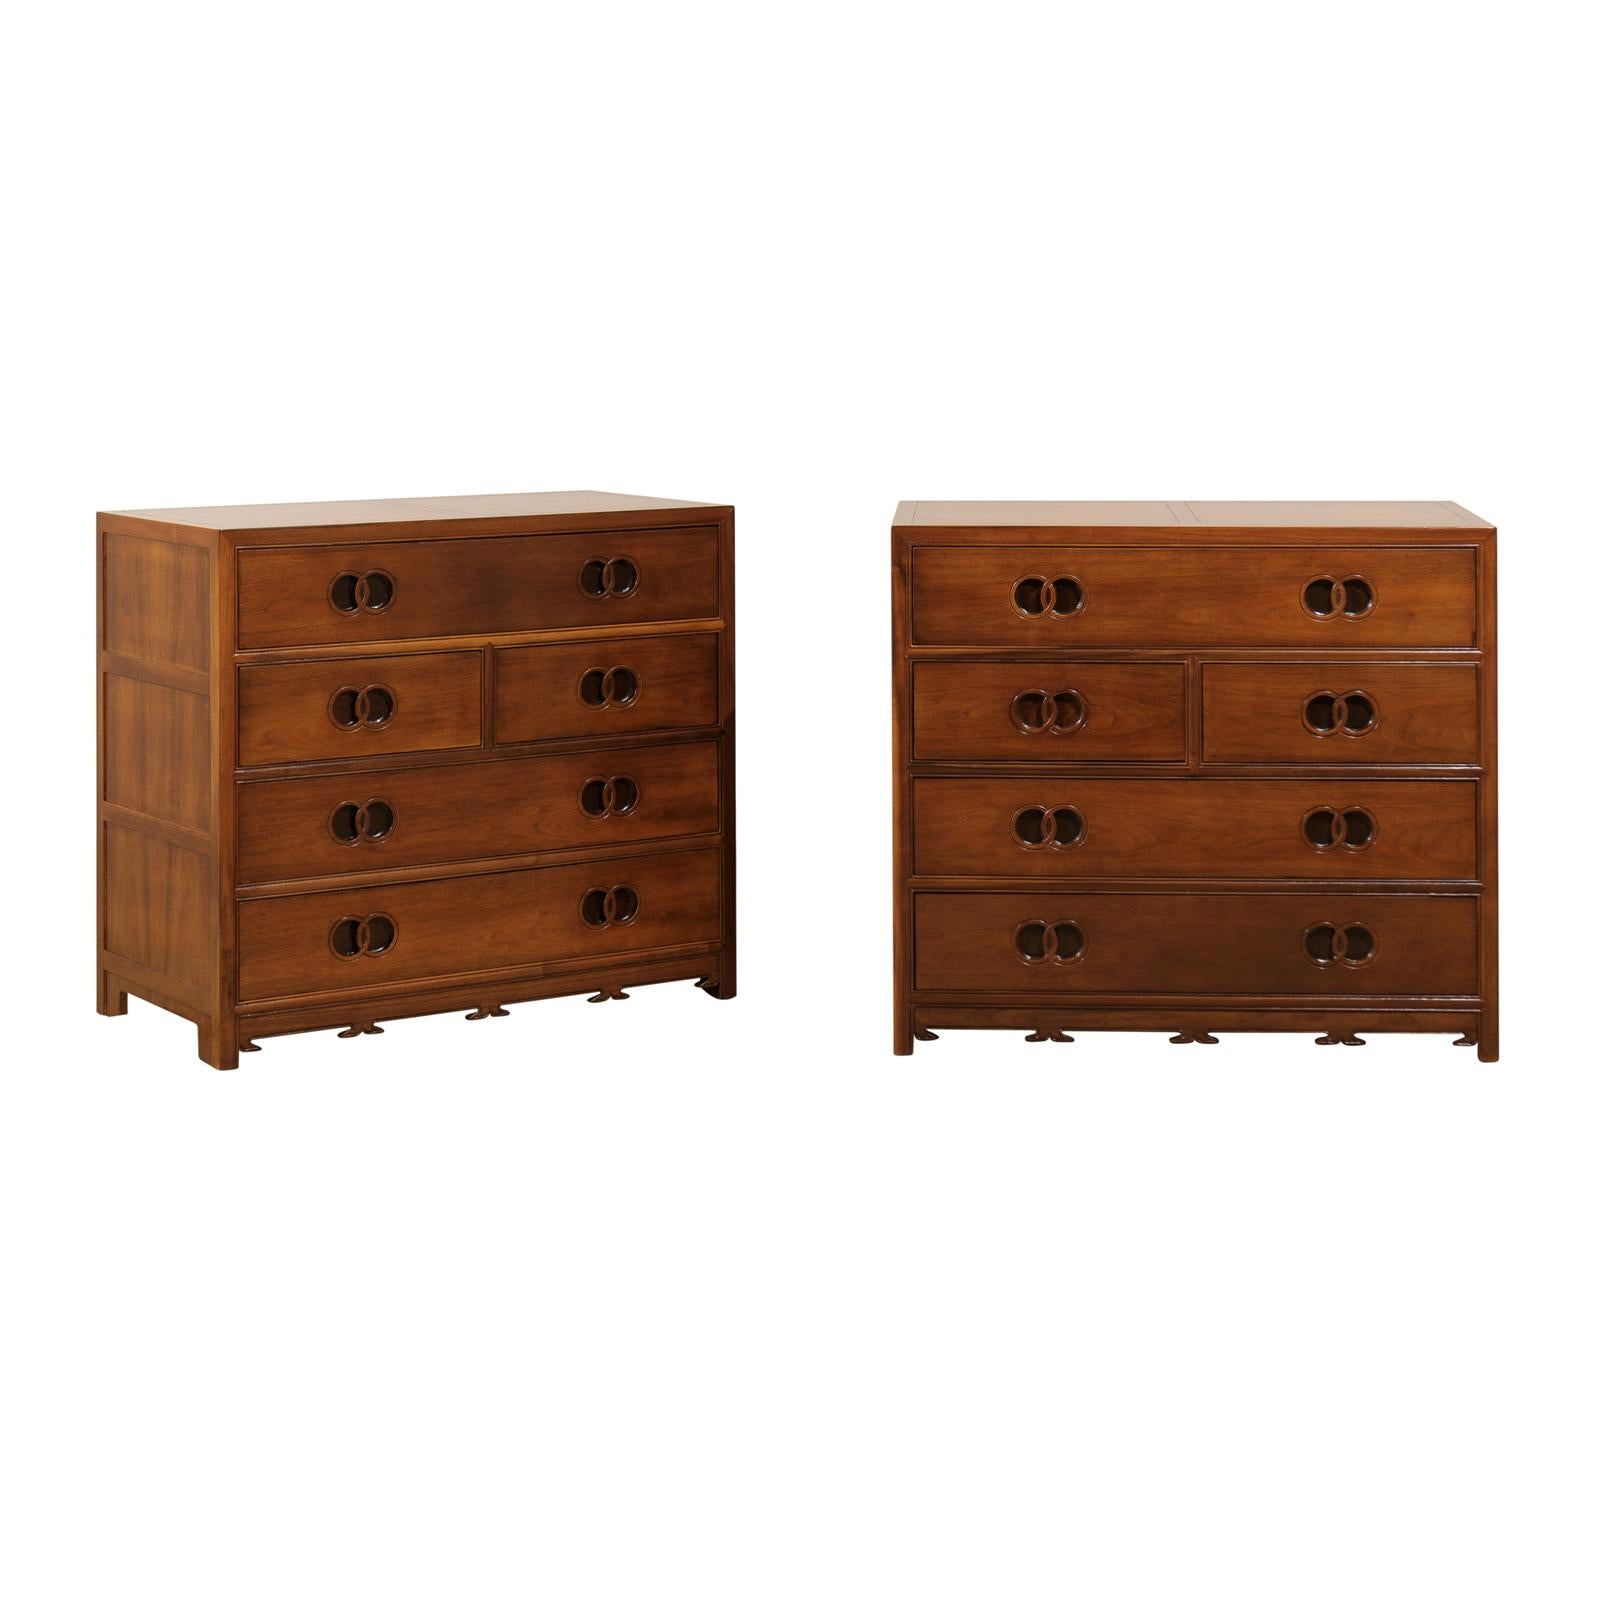 Stunning Restored Pair of Walnut Chests by Michael Taylor for Baker, circa 1960